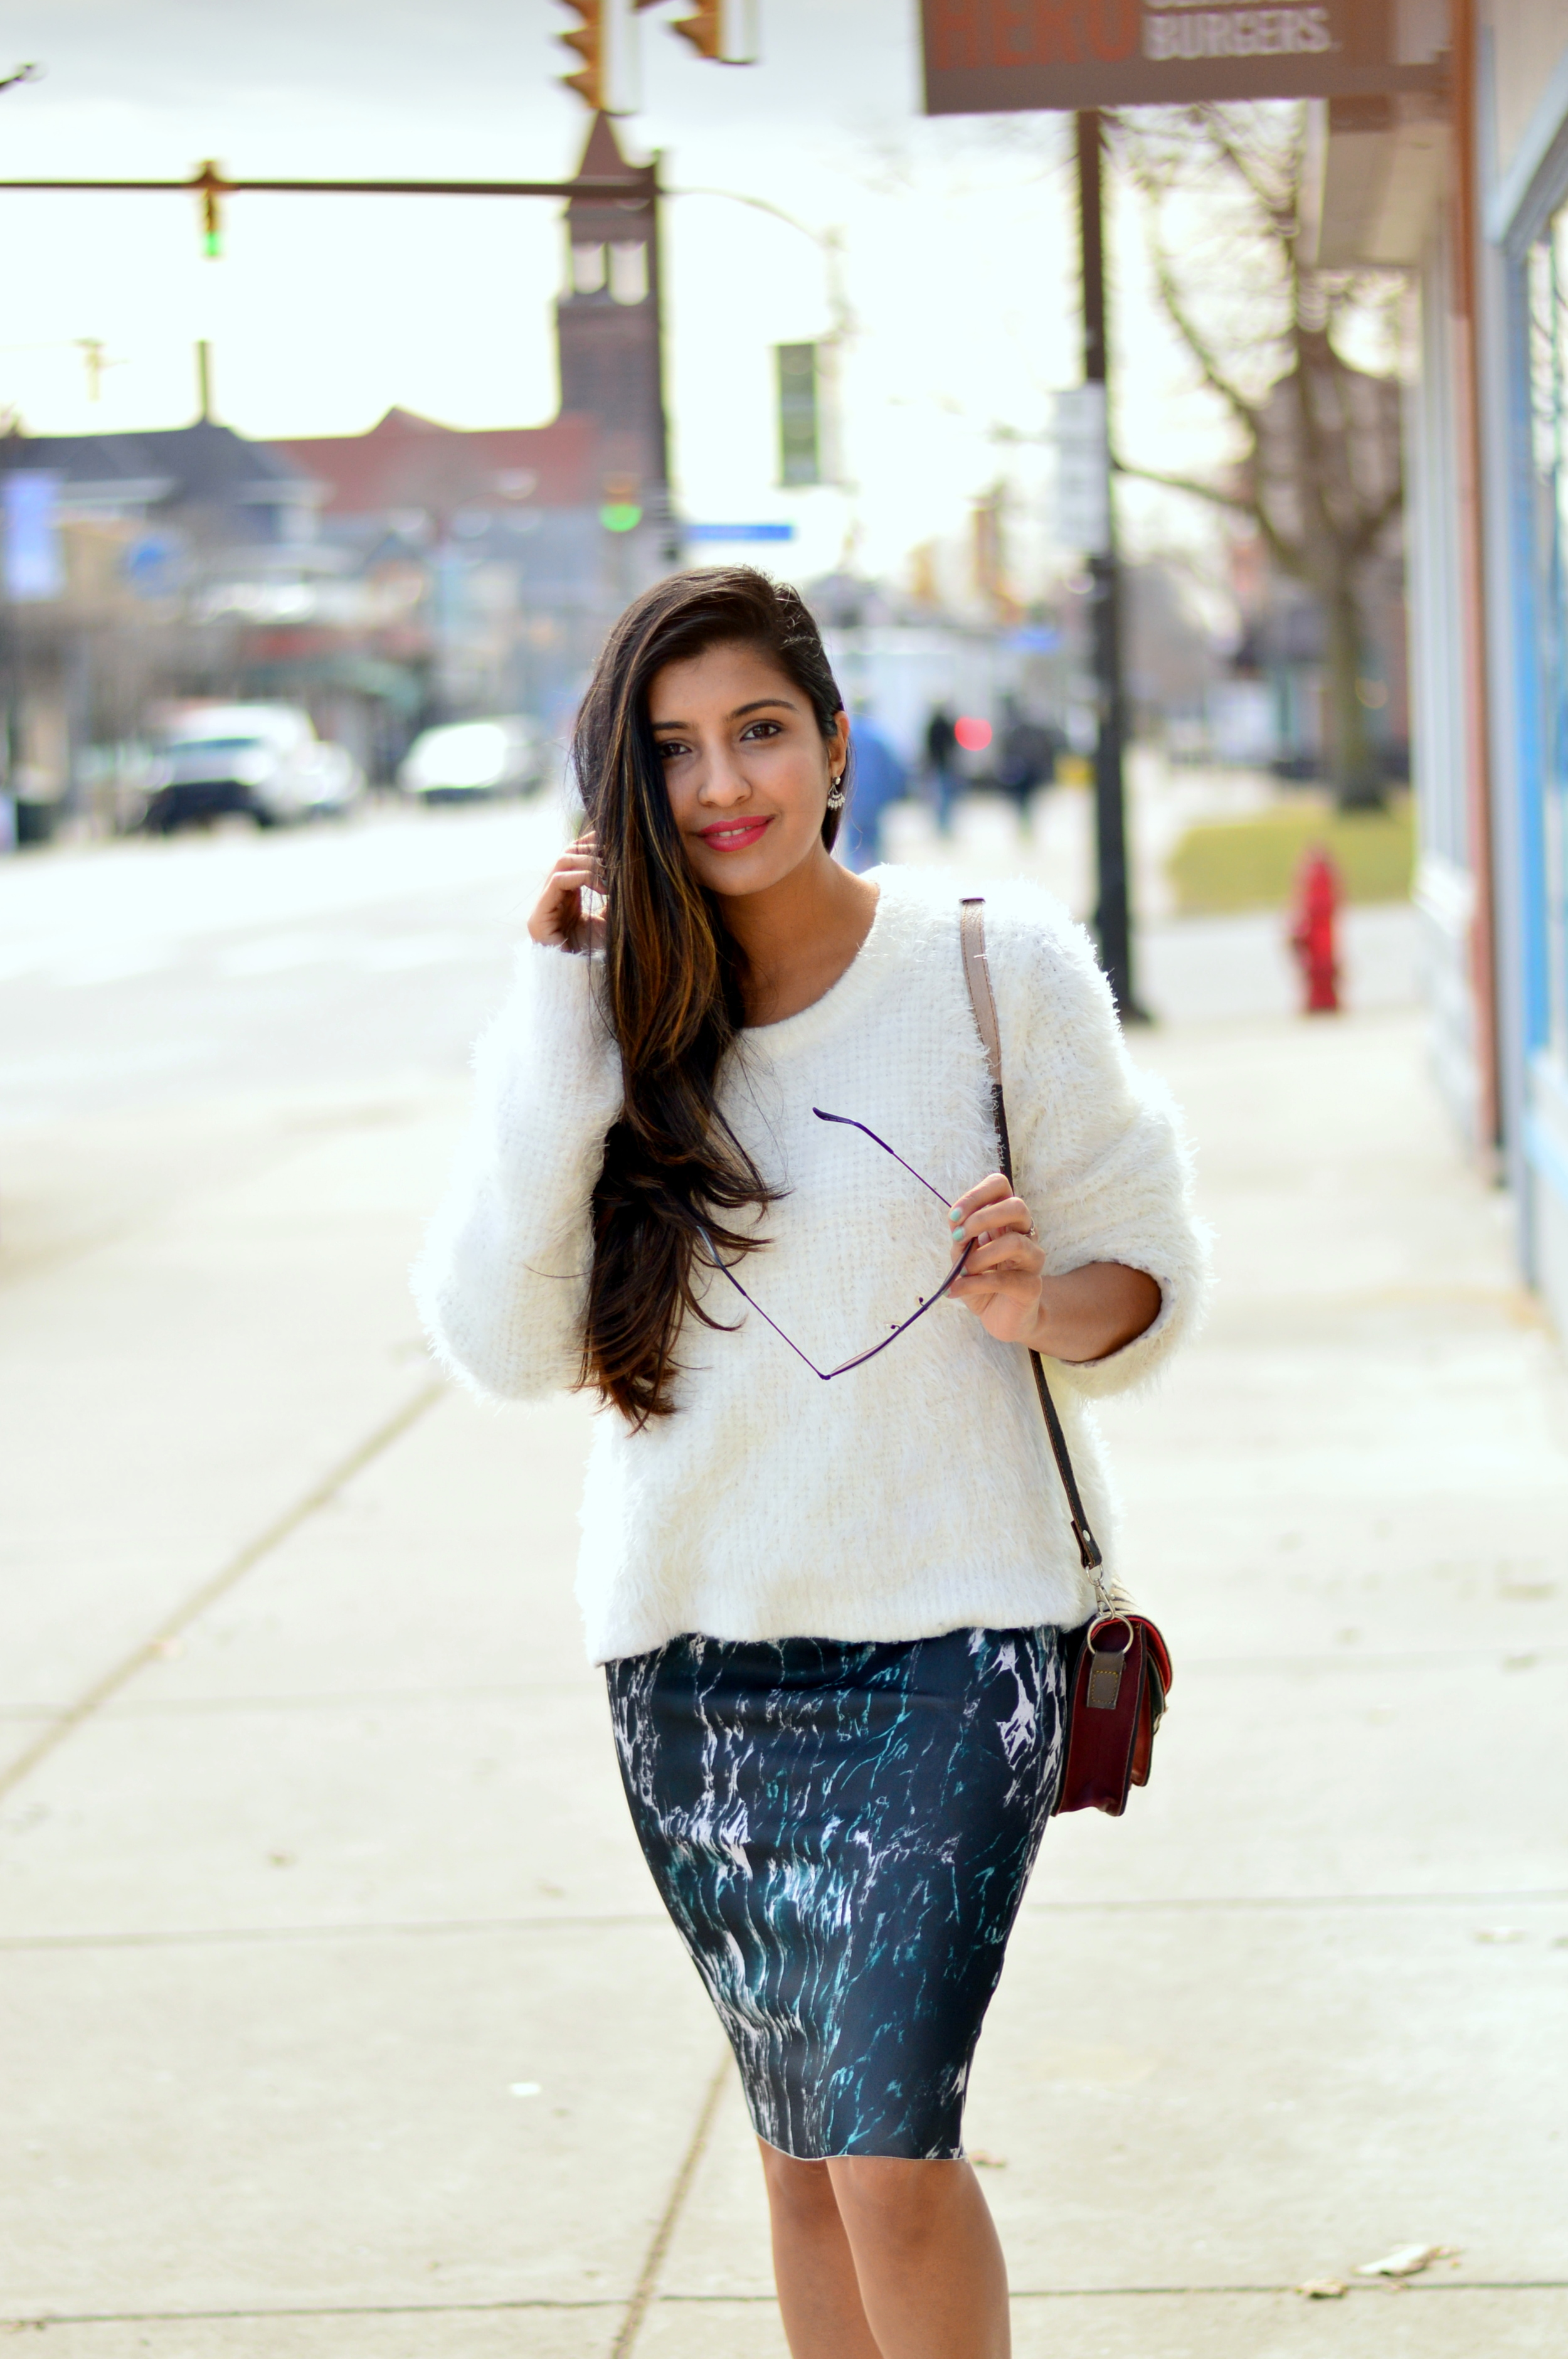 sweater-pencil-skirt-sneakers-style-blogger 5